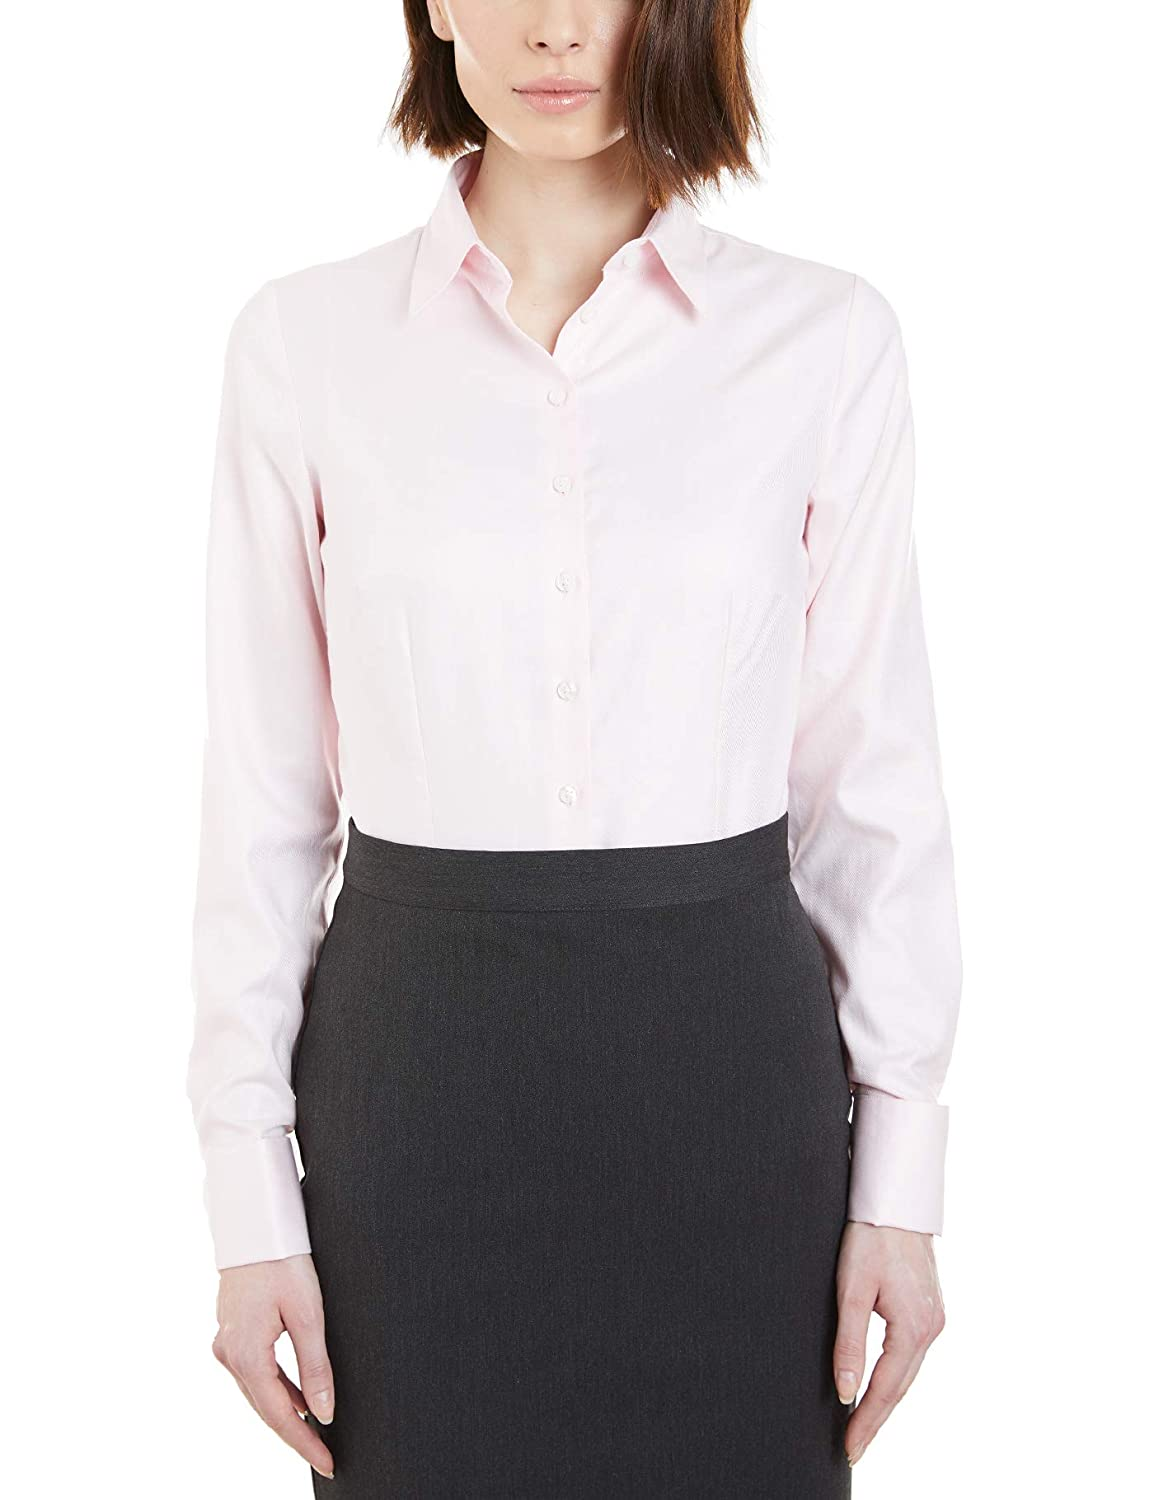 ab96fc486d99 HAWES & CURTIS Womens Executive Twill Fitted Double Cuff Pointed Collar  Shirt: Amazon.co.uk: Clothing